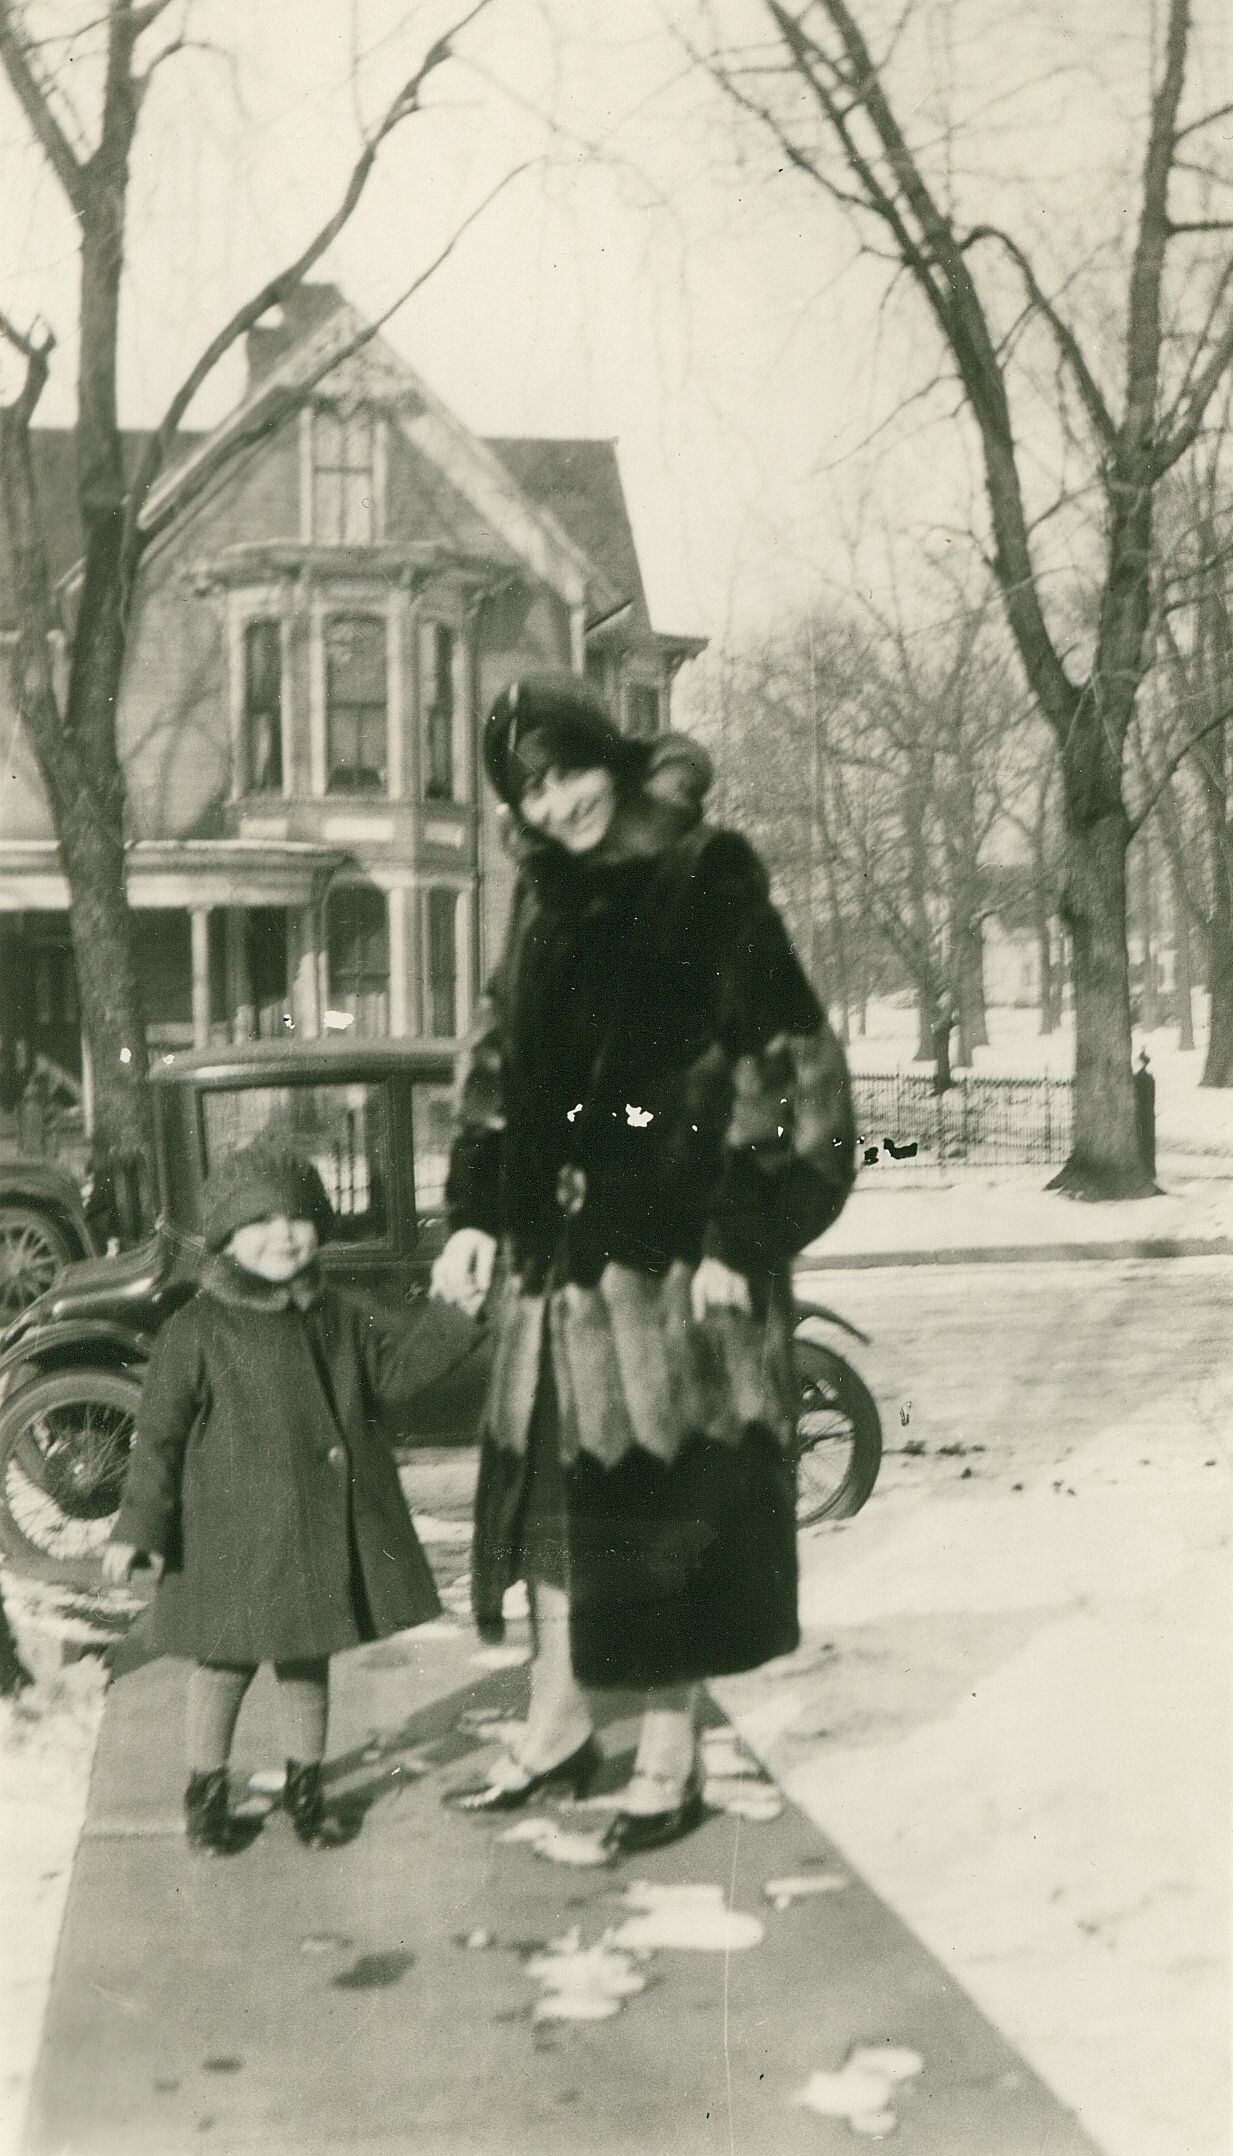 My love affair with fur coats started at an early age. #ninetyos #storiesshared #furcoats #vintagefashion